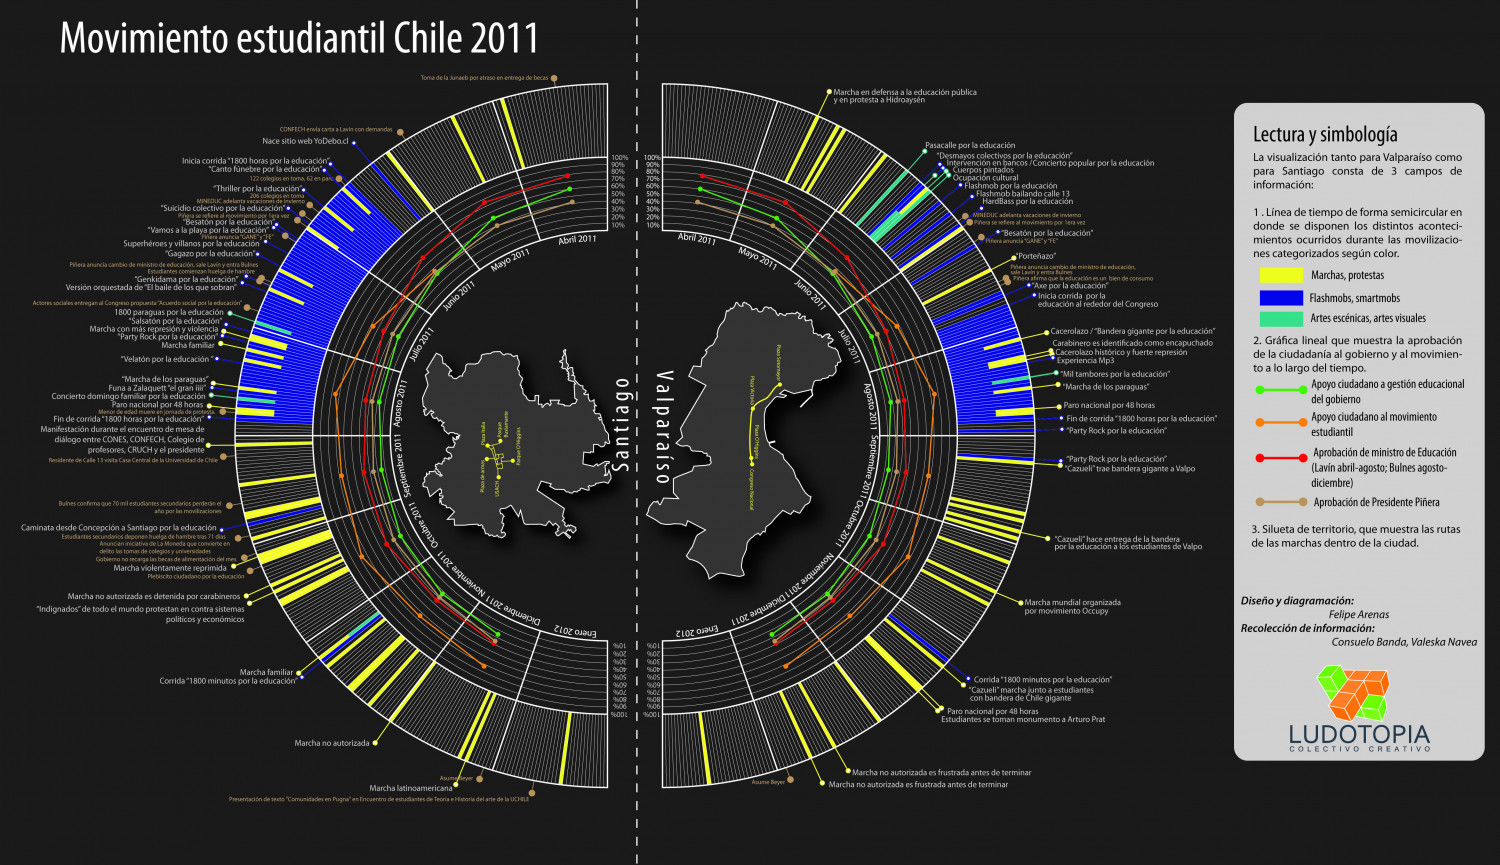 Movimiento estudiantil en Chile 2011 Infographic